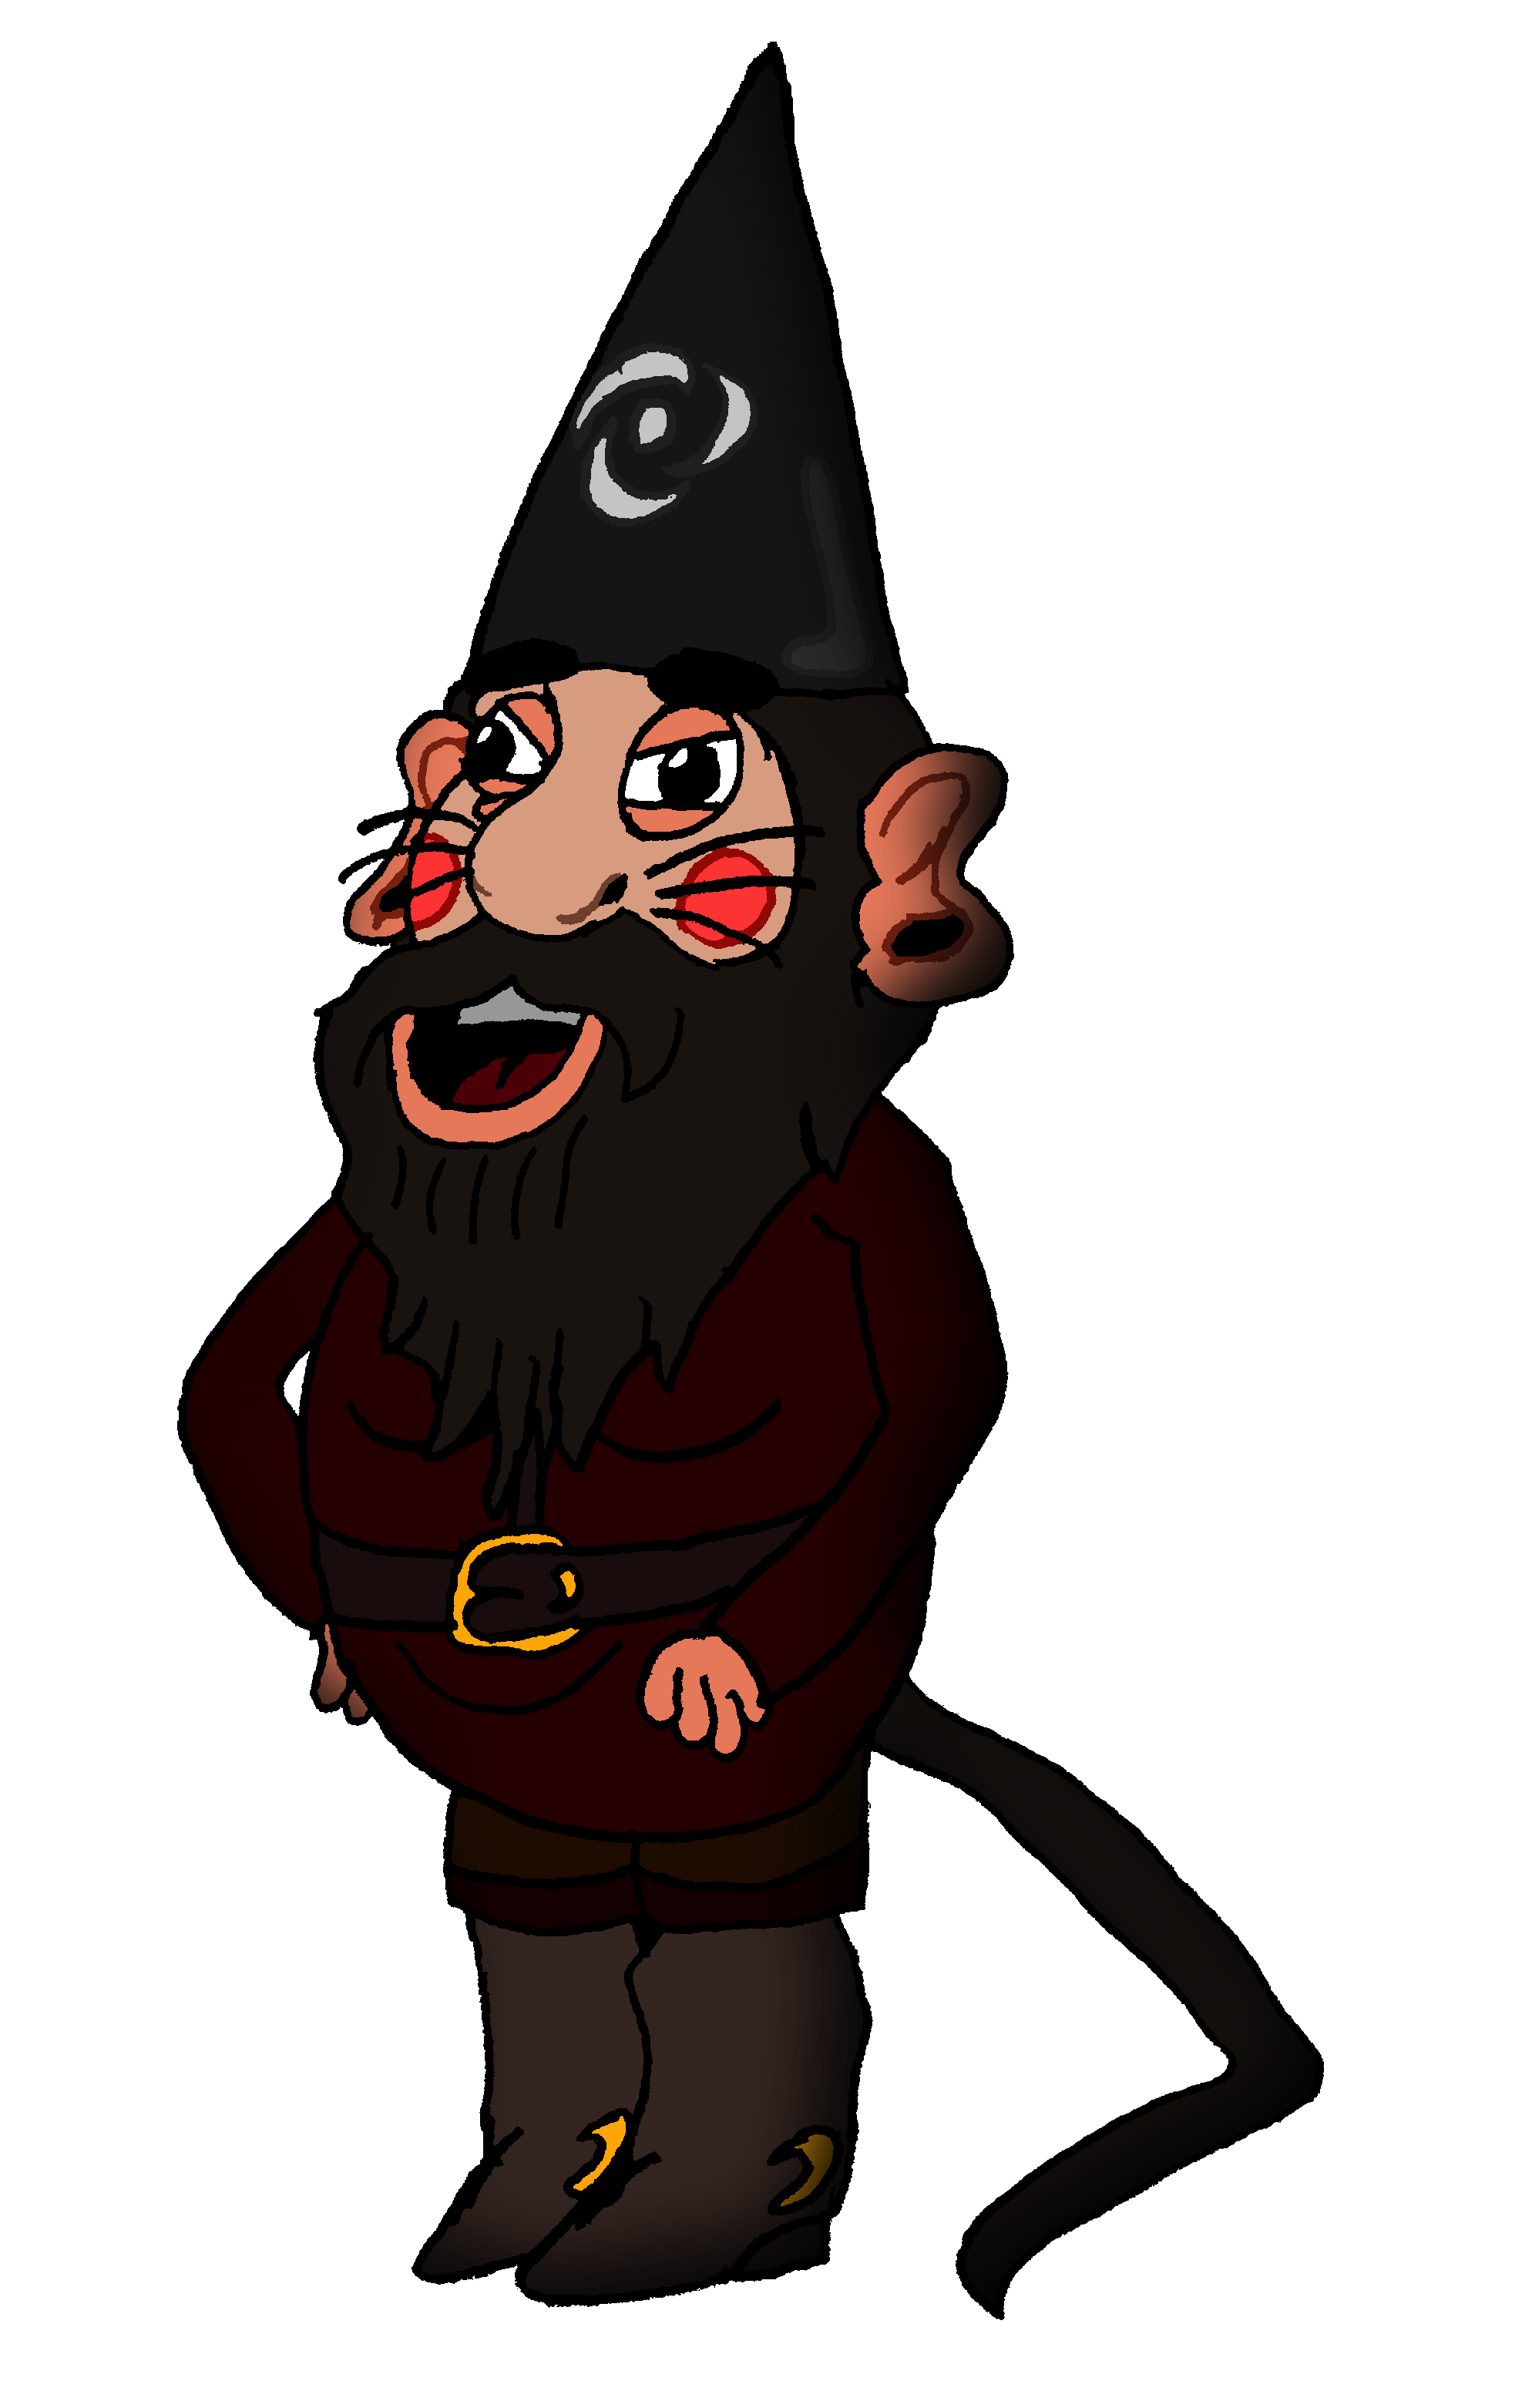 Rat clipart mascot. The gnome hybrid by